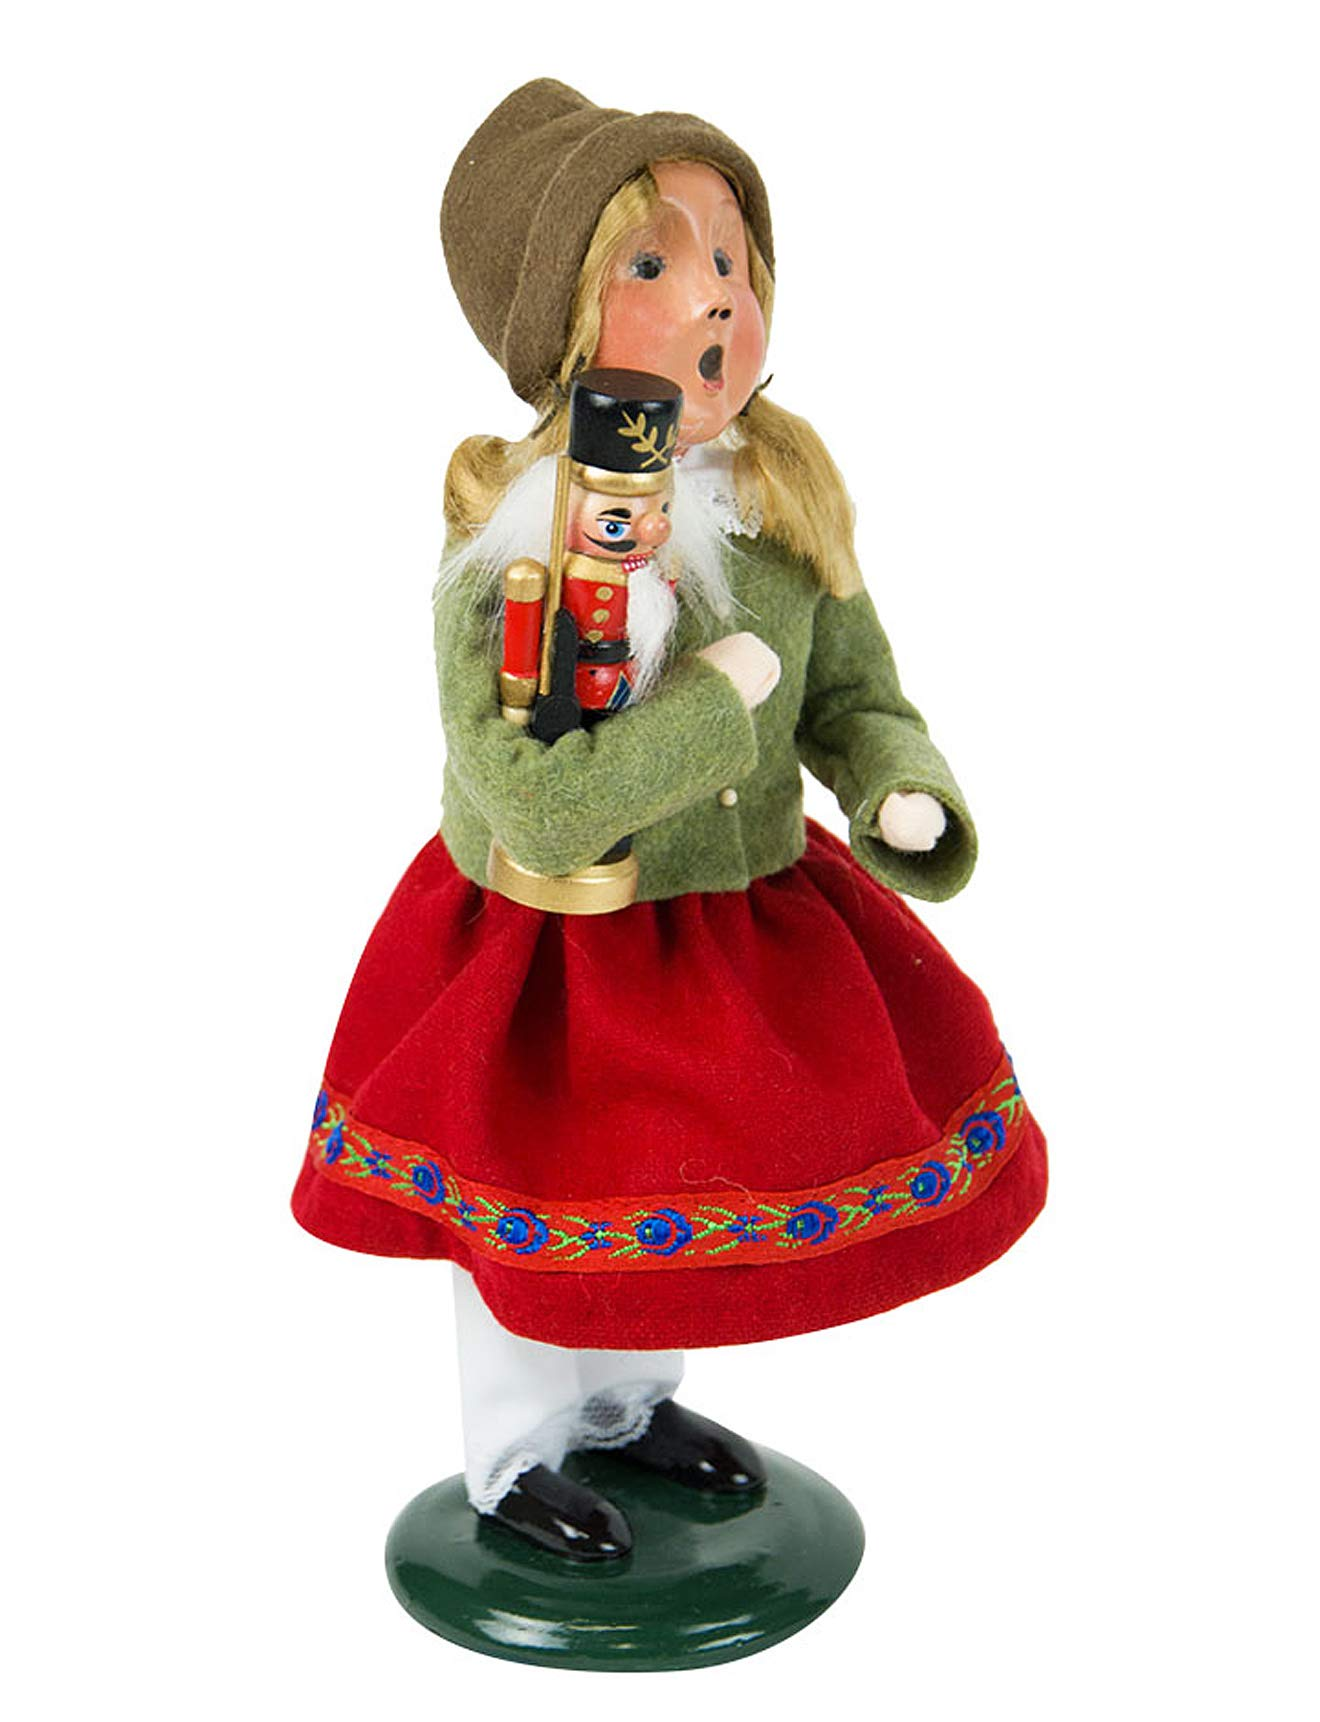 Holiday Figurines - Byers Choice - Girl with Nutcracker - New for Christmas 2018